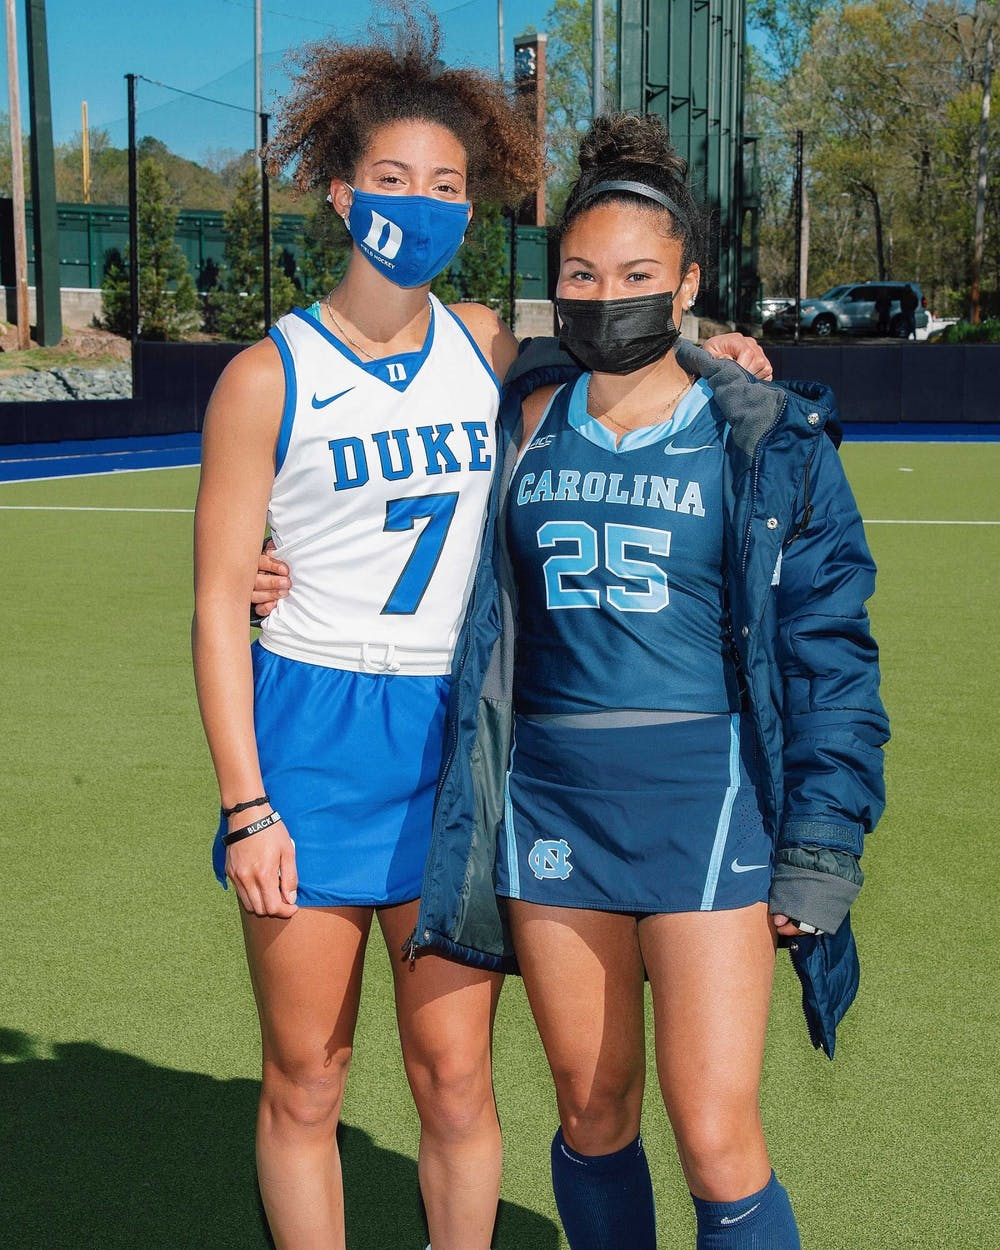 """UNC field hockey player Courtnie Williamson (right) and Duke field hockey player Darcy Bourne (left) founded """"Beyond Our Game"""" in February 2021 to help minority athletes in creating careers after college. Photo courtesy of Courtnie Williamson."""